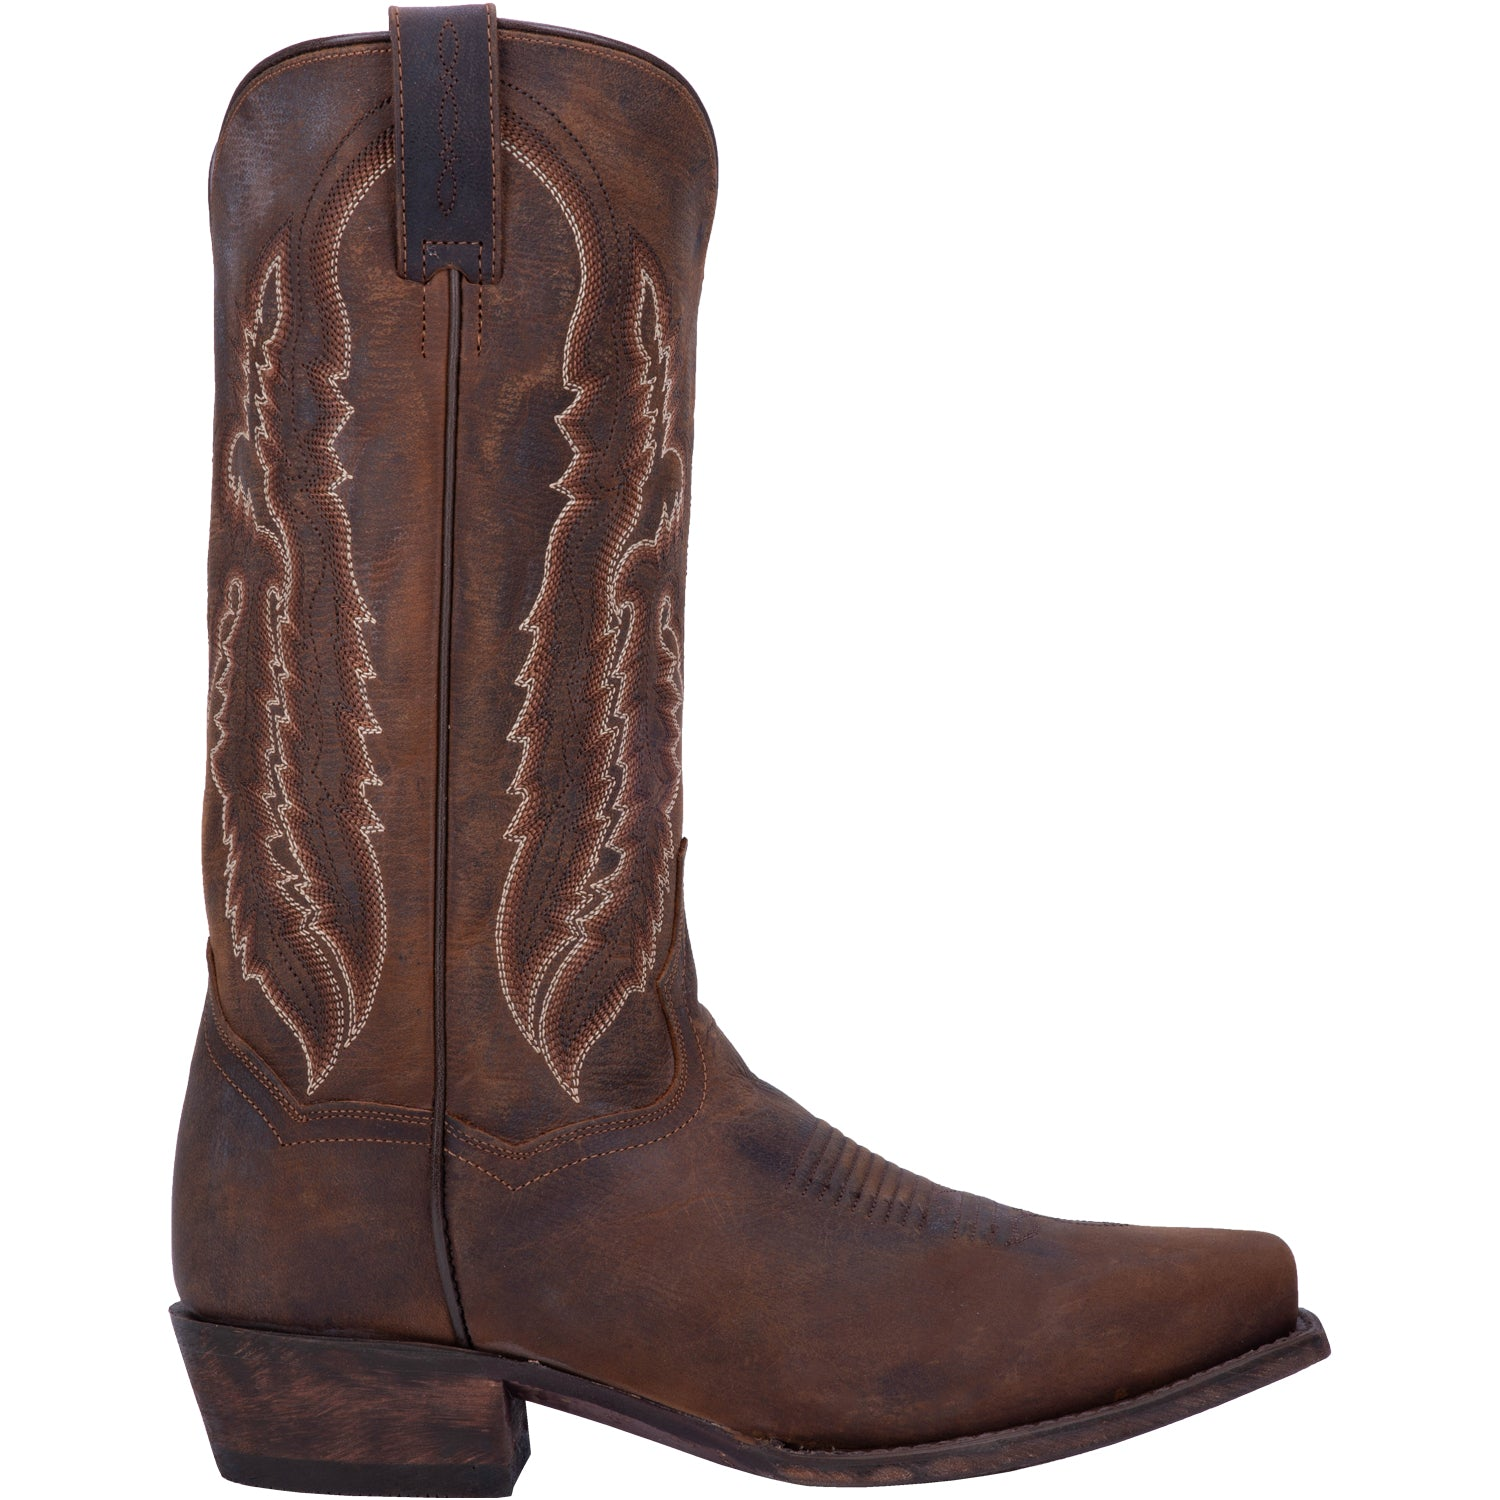 RENEGADE CS LEATHER BOOT 4254104223786